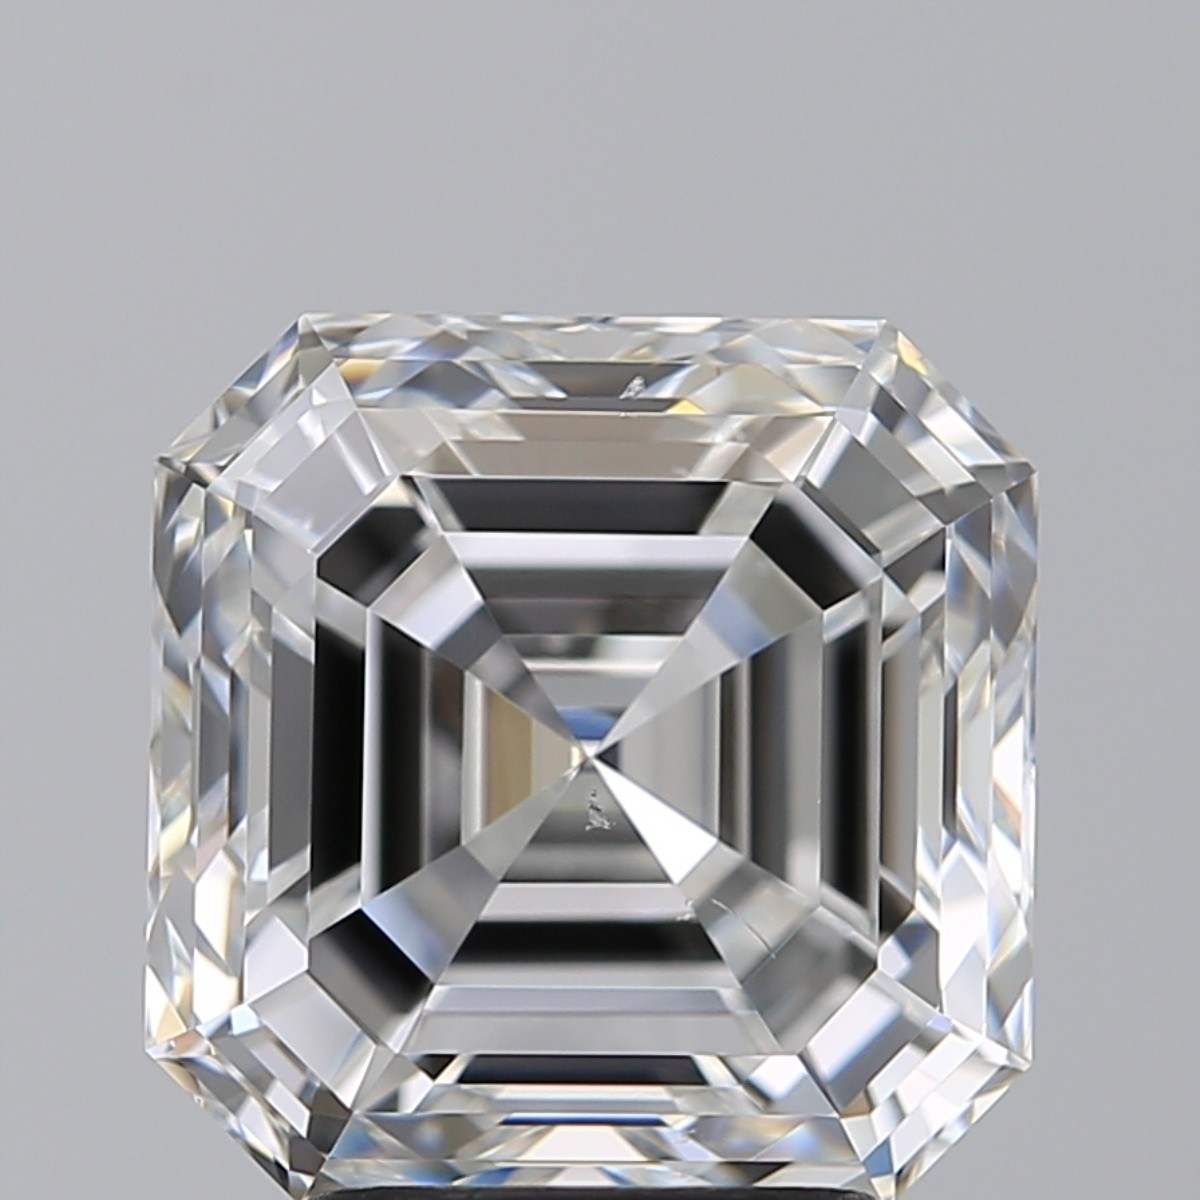 4.01 Carat Asscher Diamond (E/VS2)